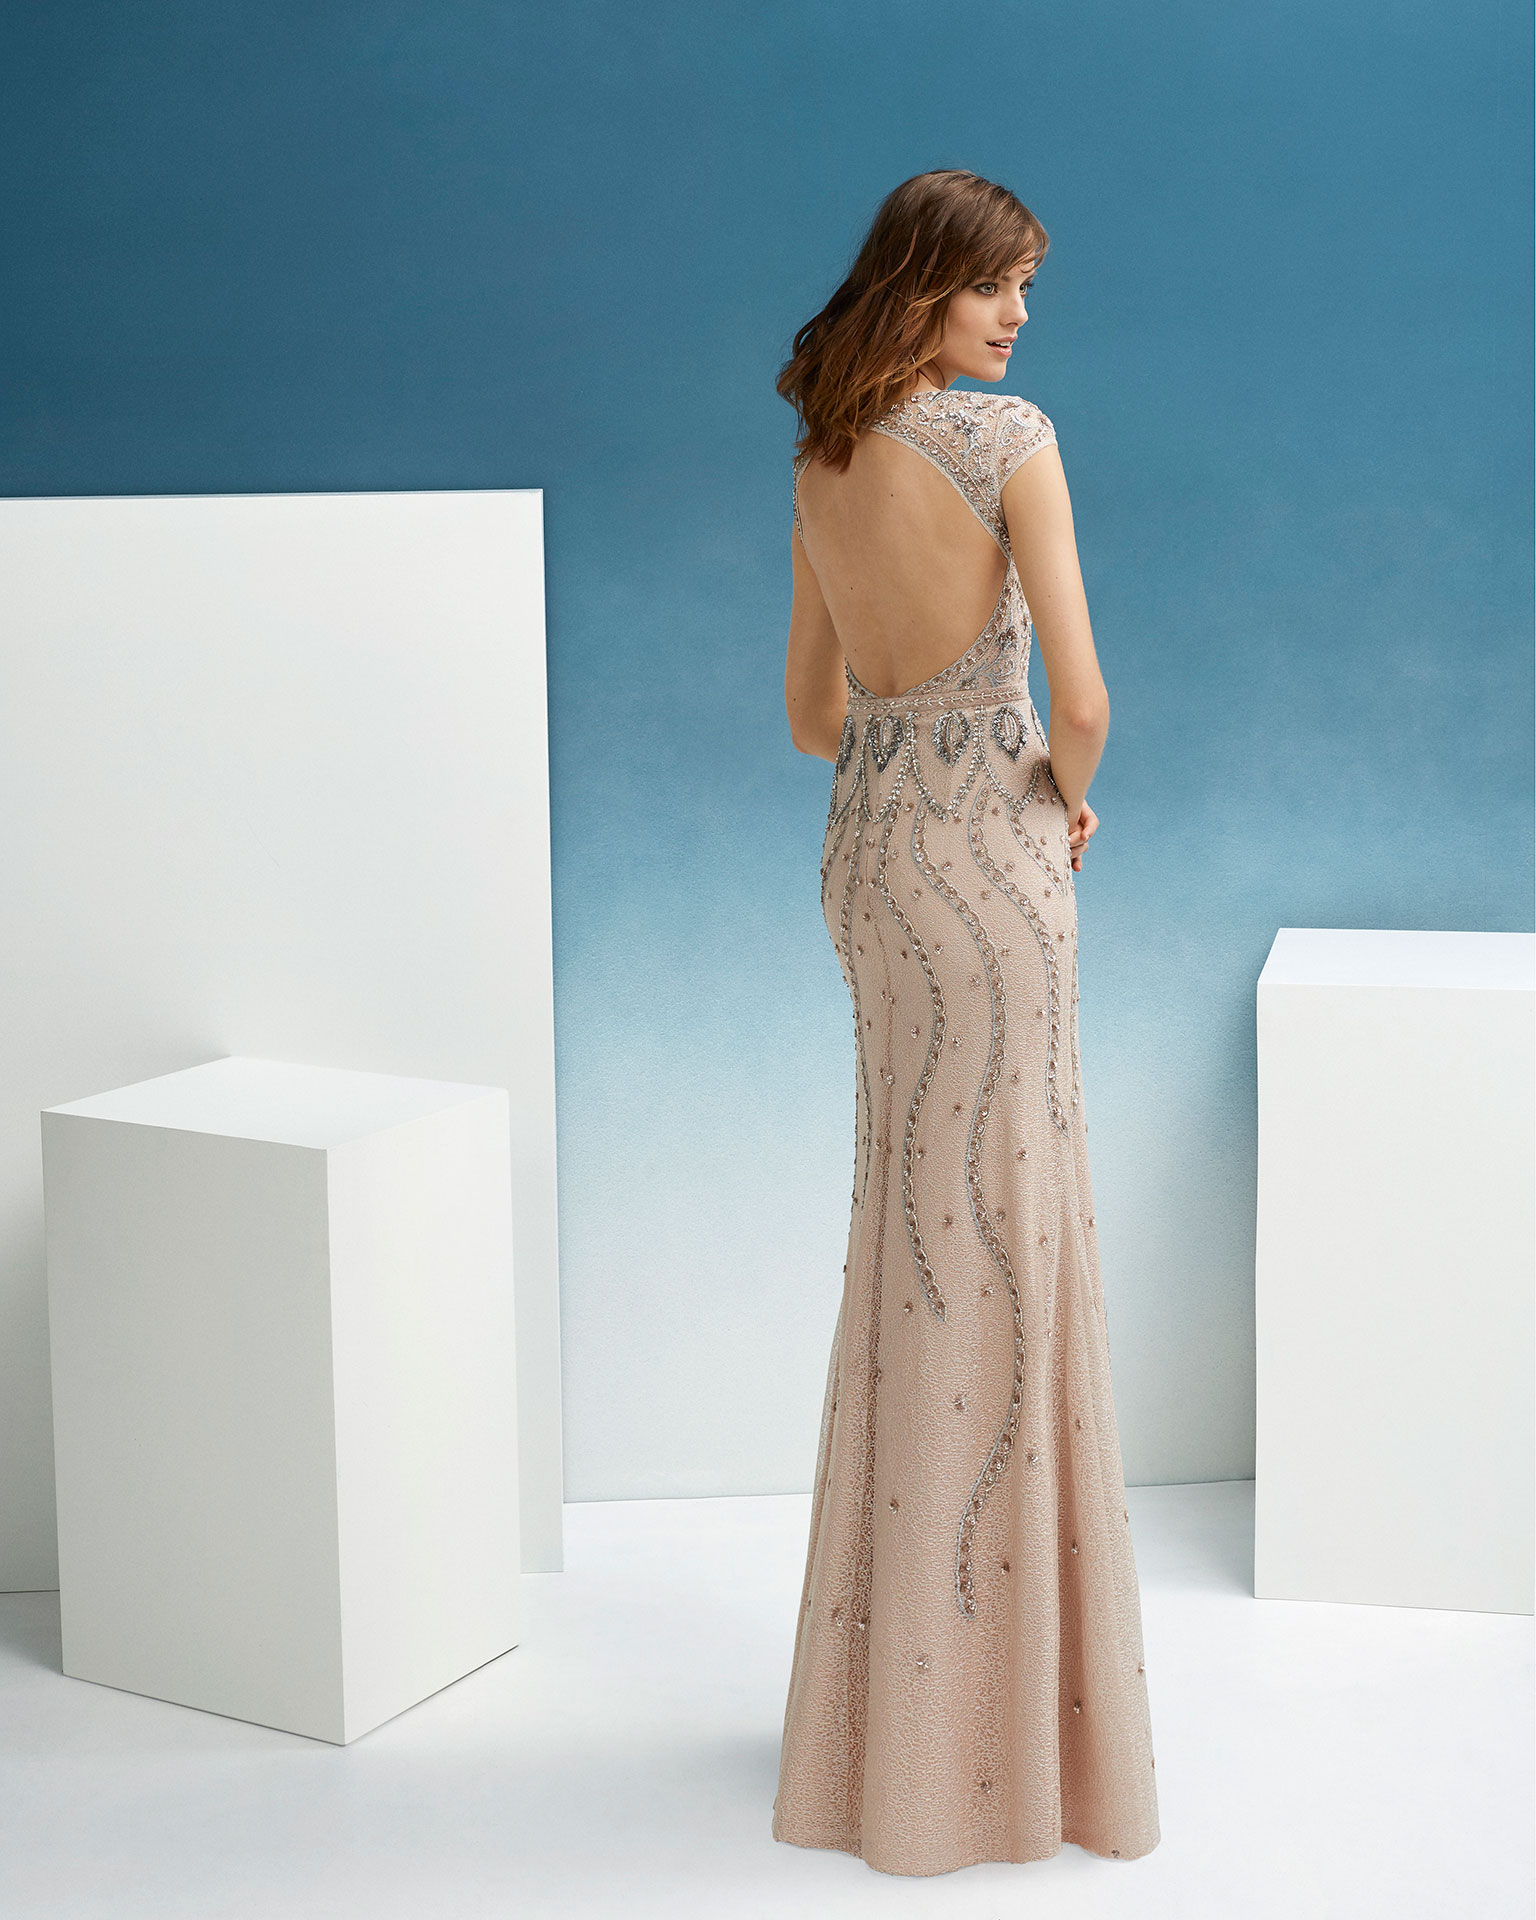 Beaded cocktail dress. With sweetheart neckline, low back and short sleeves. 2019 FIESTA AIRE BARCELONA Collection.